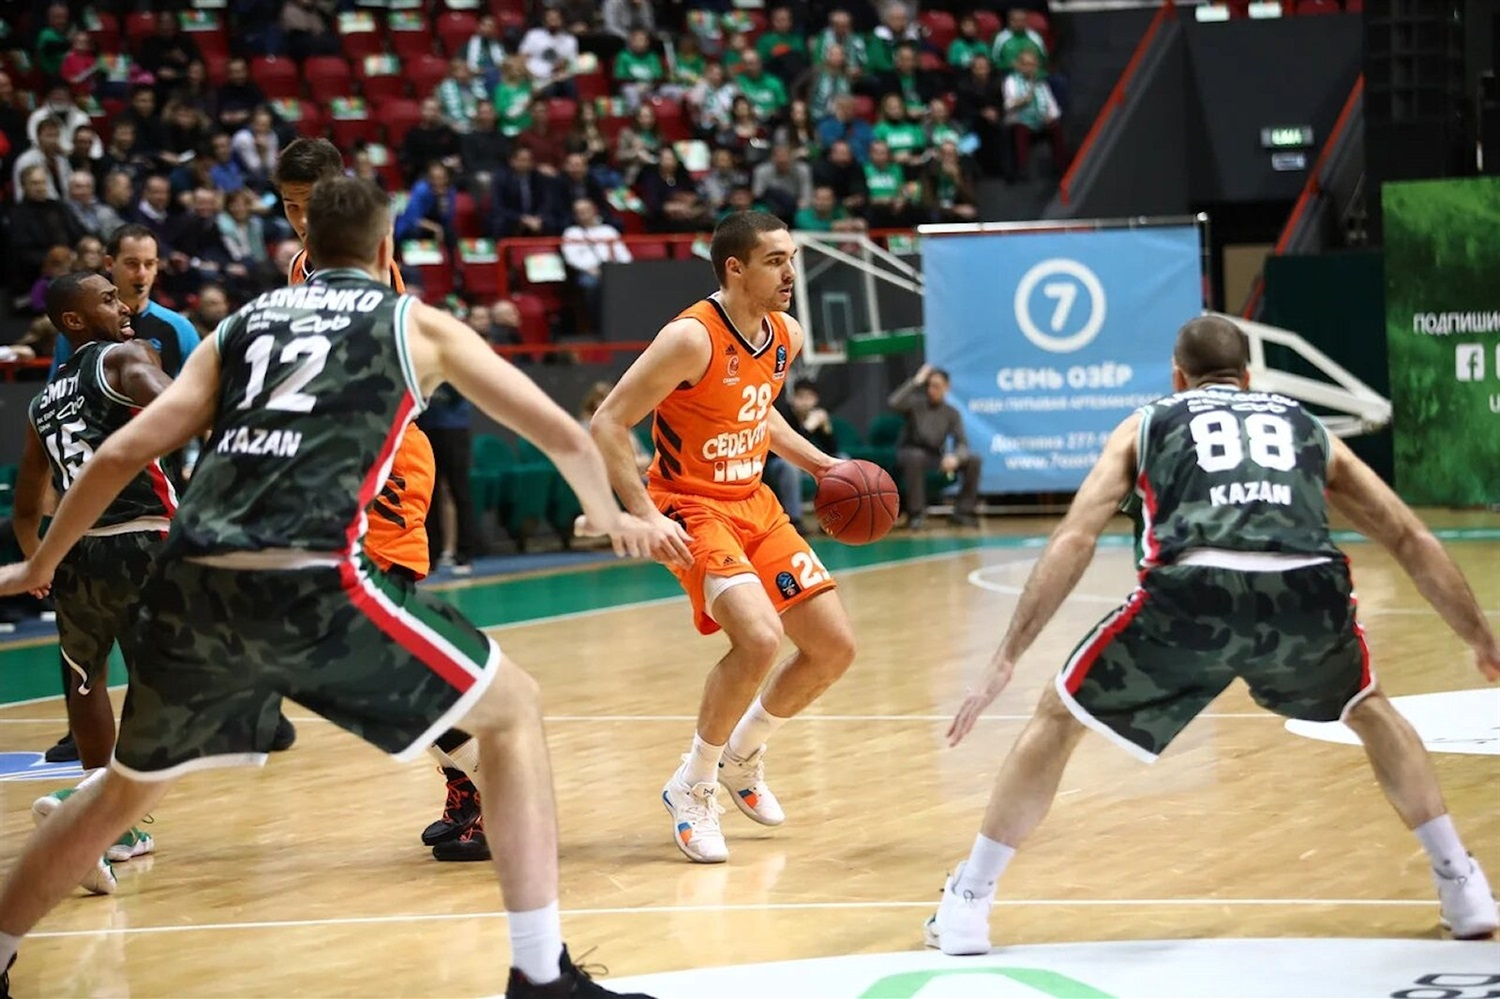 Jakov Mustapic - Cedevita Zagreb (photo UNICS) - EC18